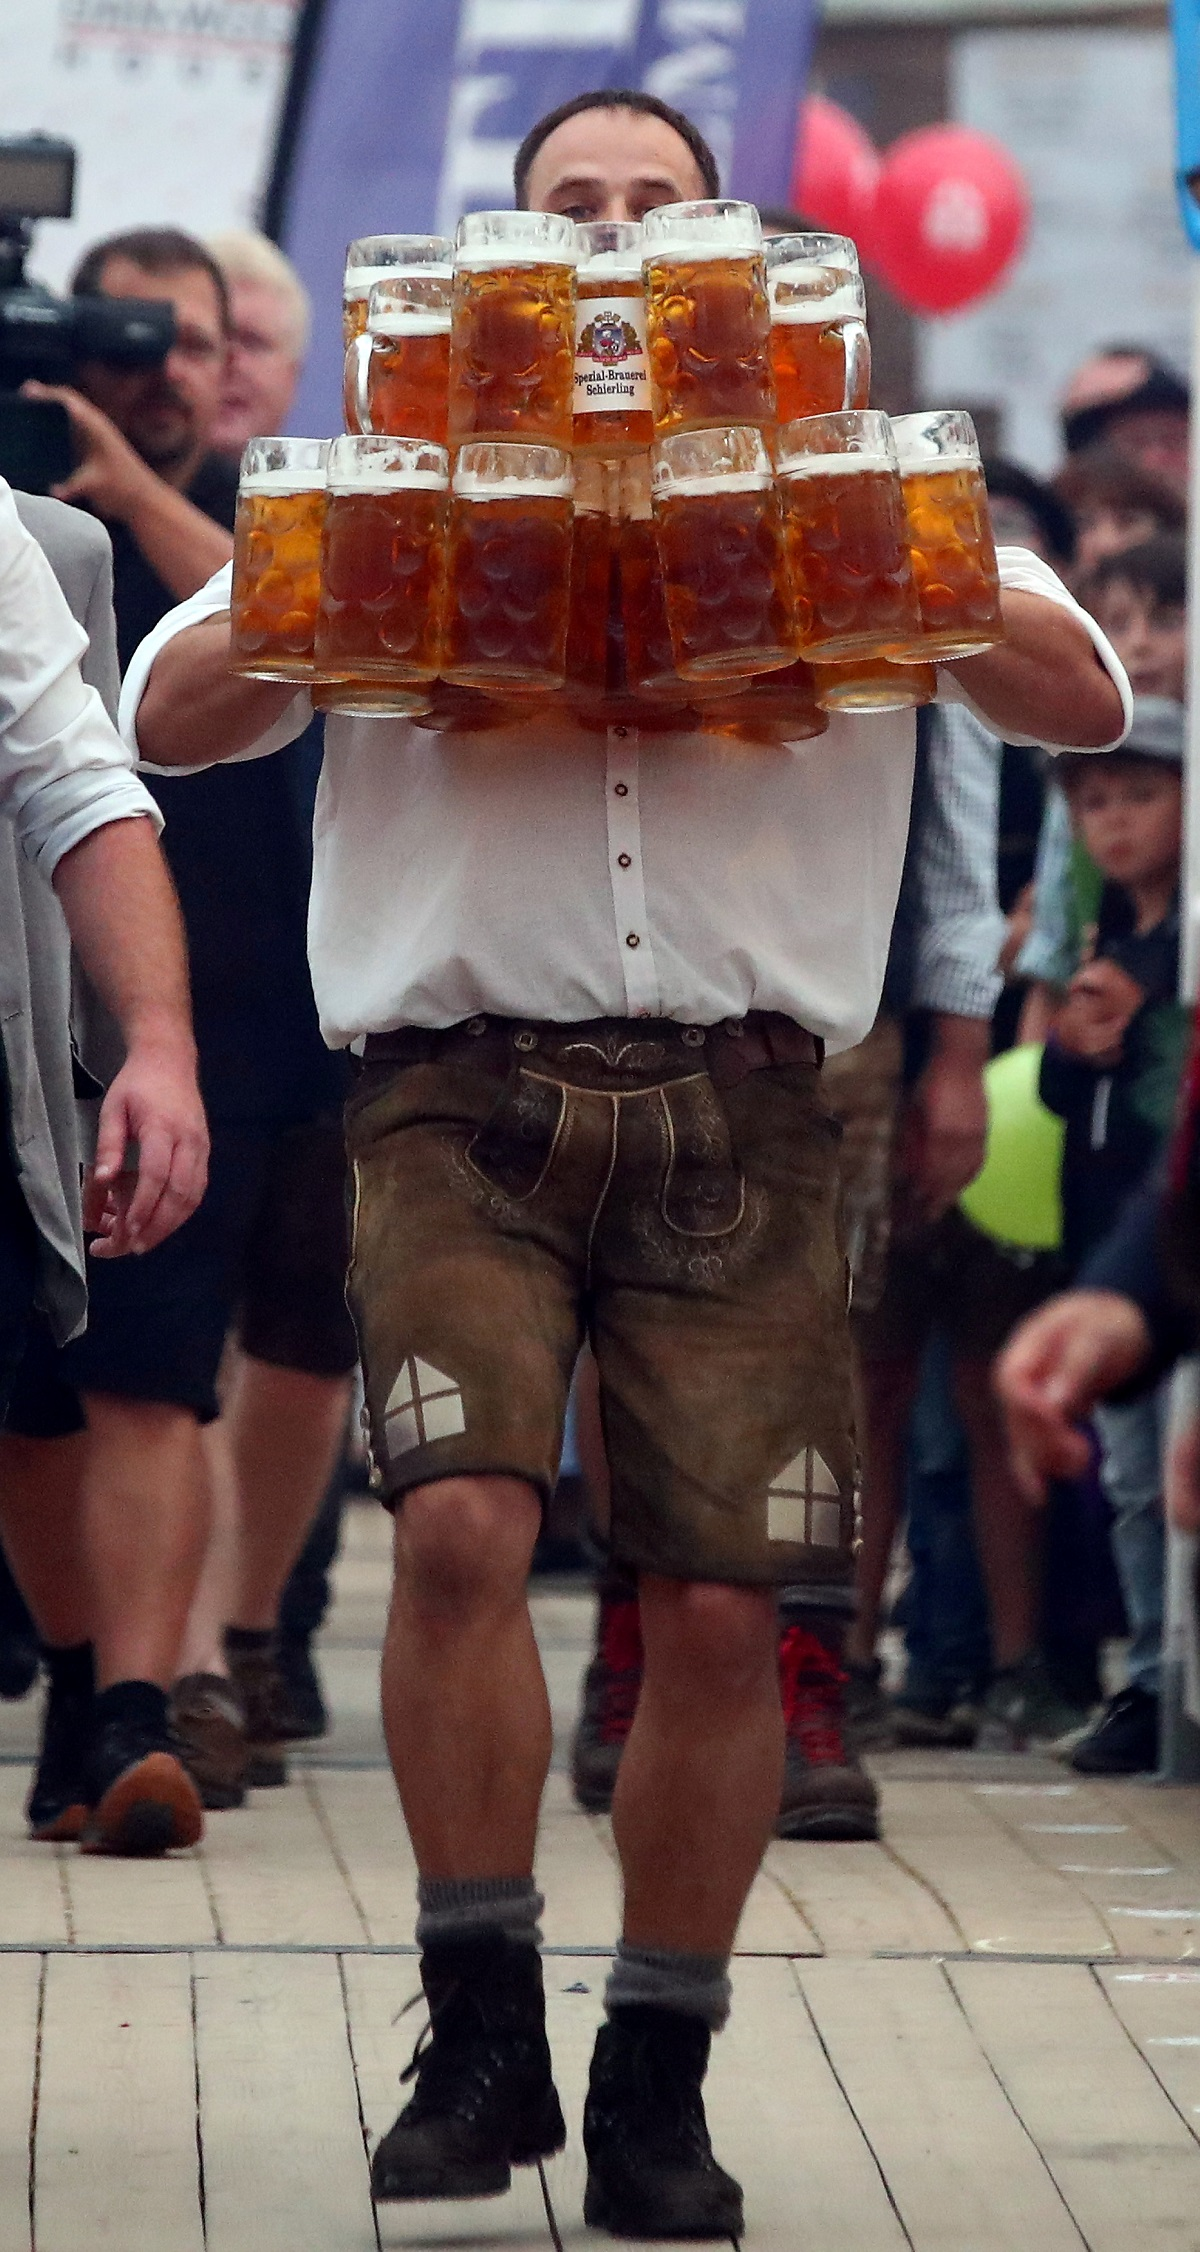 German Oliver Struempfel competes to set a new world record in carrying one liter beer mugs over a distance of 40 m (131 ft 3 in) in Abensberg, Germany September 3, 2017. Struempfel carried 27 mugs over 40 meters to set a new world record. REUTERS/Michael Dalder - RC1D45409C50